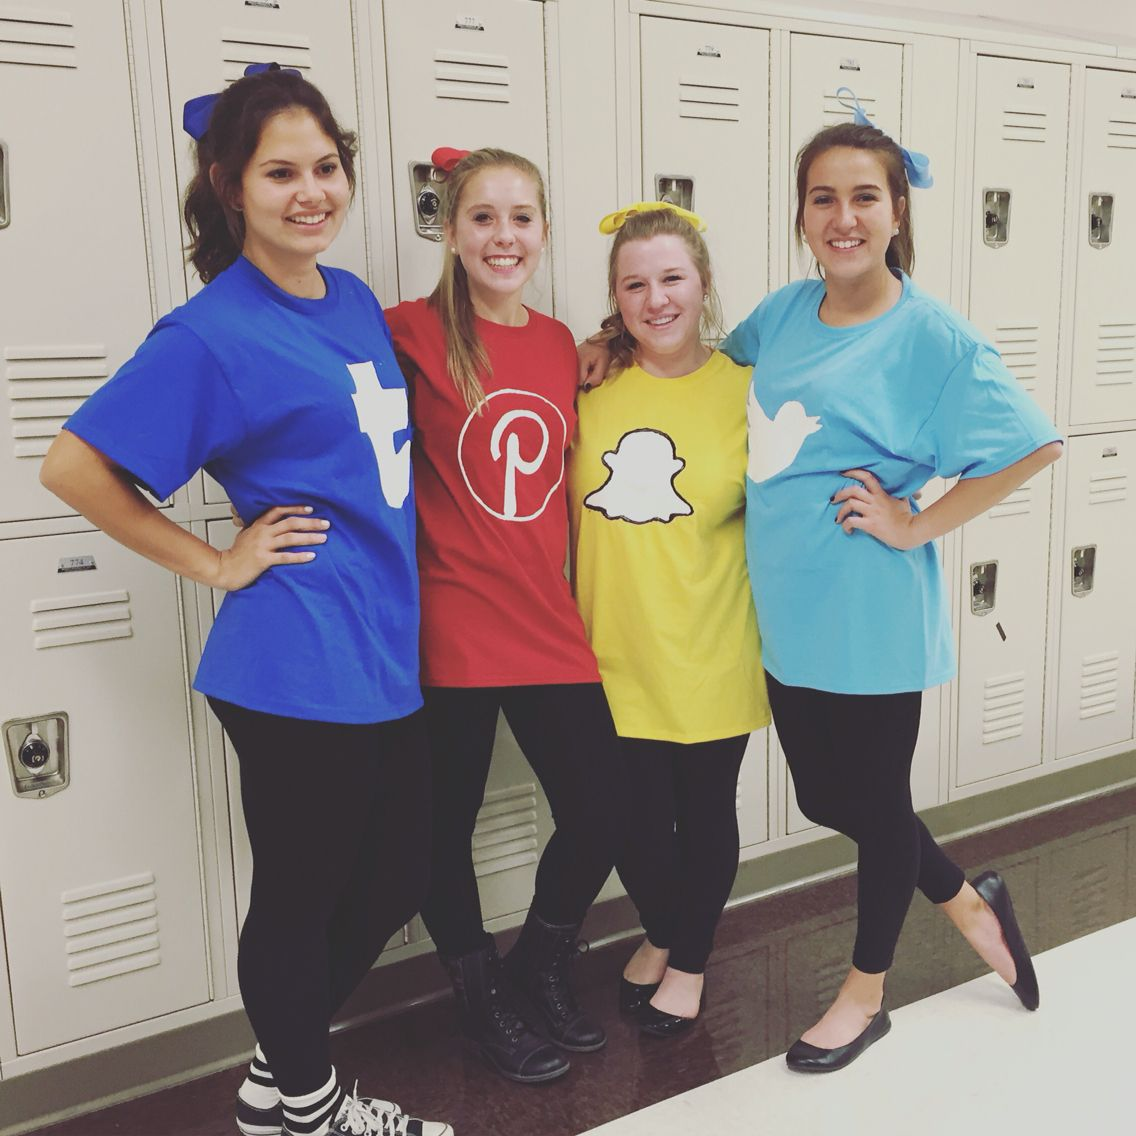 ca98f5ed6 decorate big t shirts with various social media apps for a group Halloween  costume